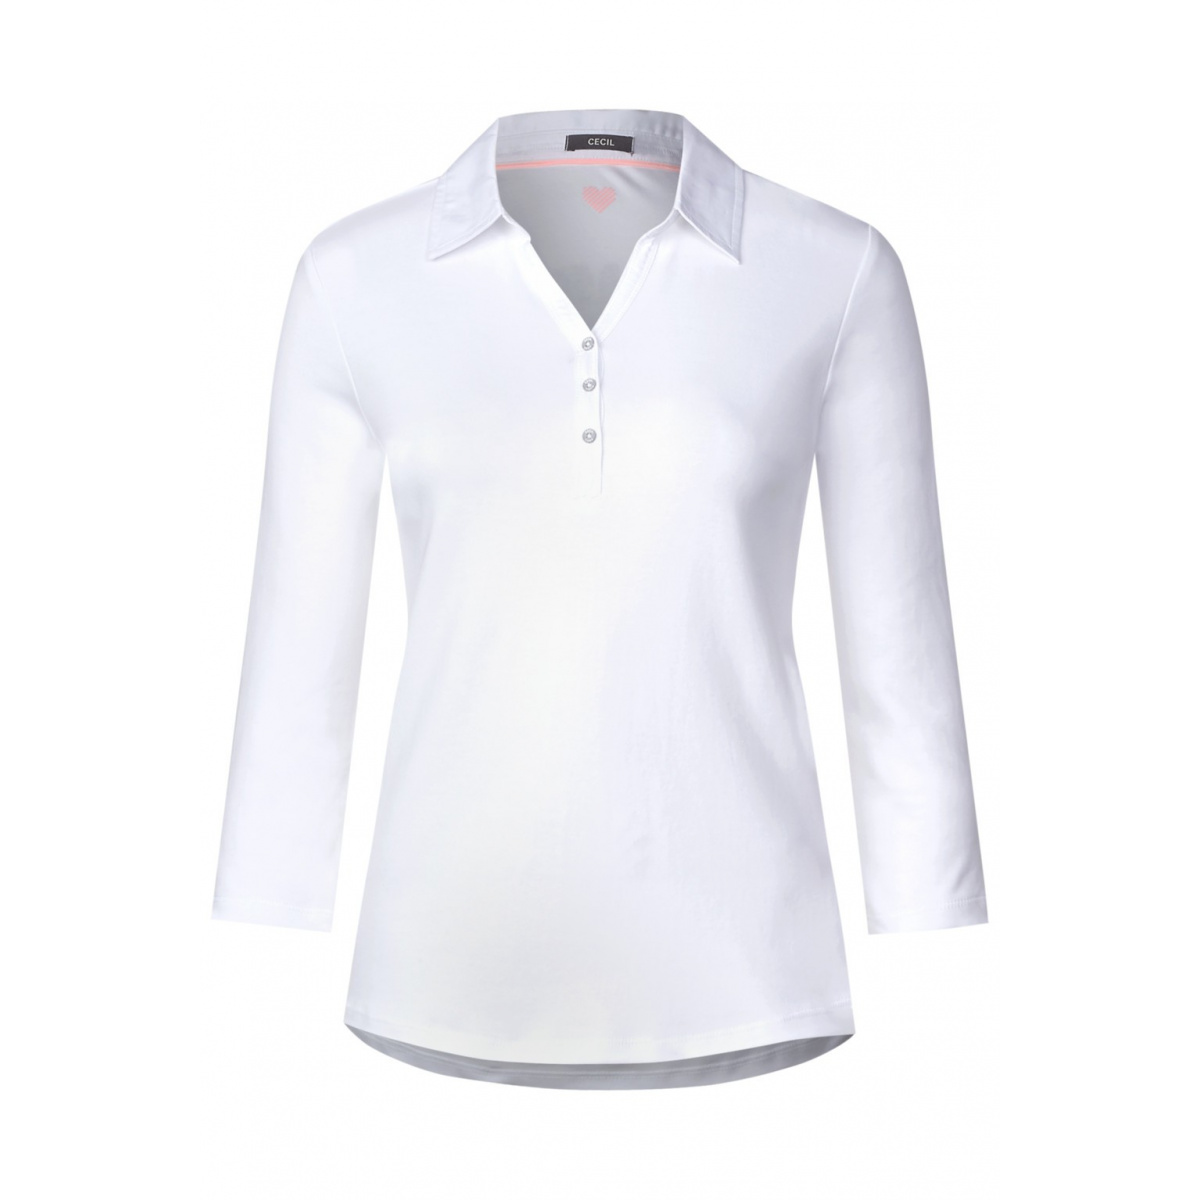 75fc61deed Polo manches longues femme blanc Cecil- CCV Mode